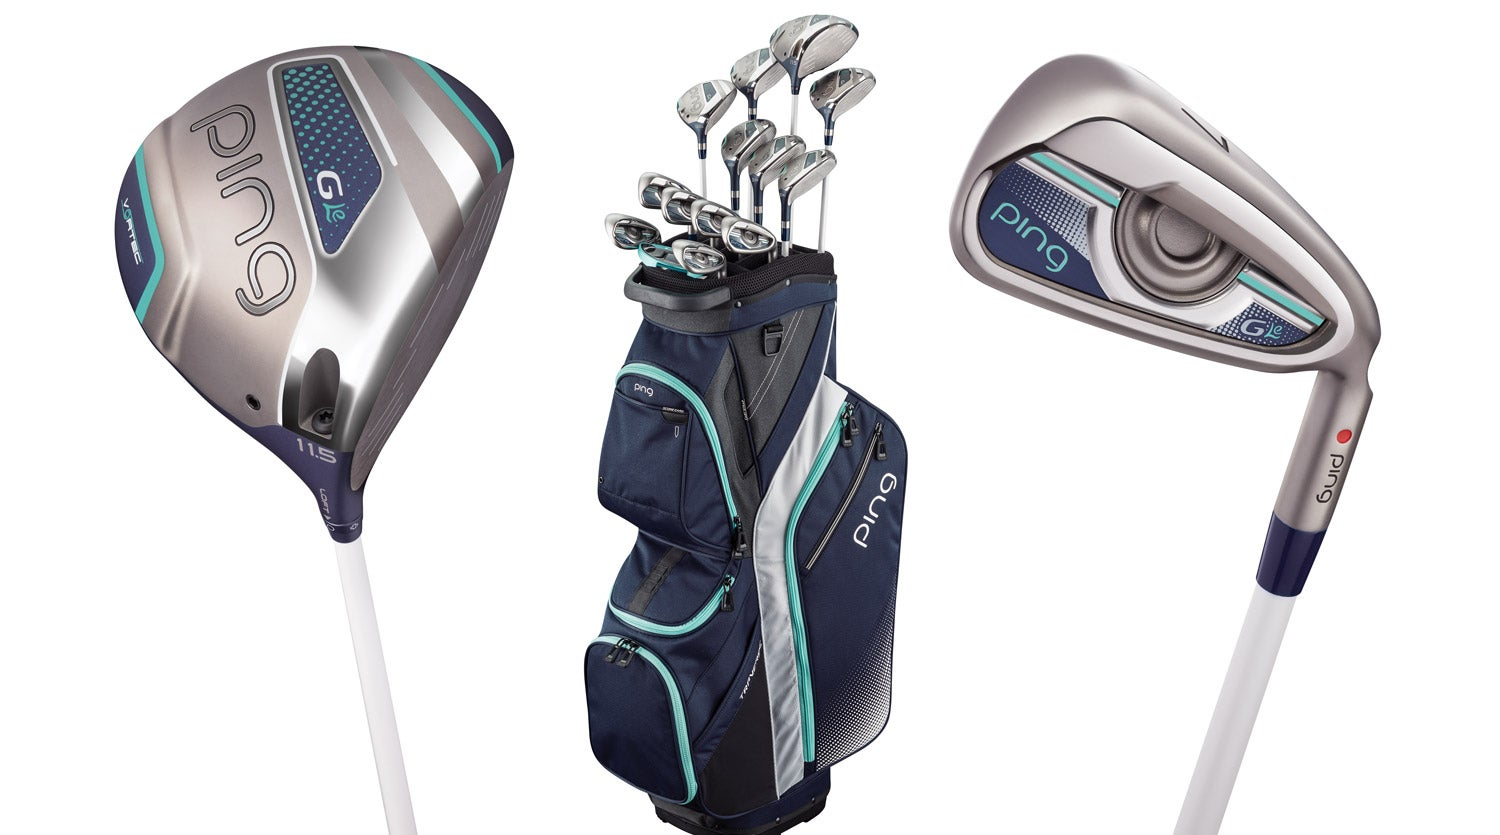 FIRST LOOK  Ping unveils G Le clubs designed for women ee759cf3c716e